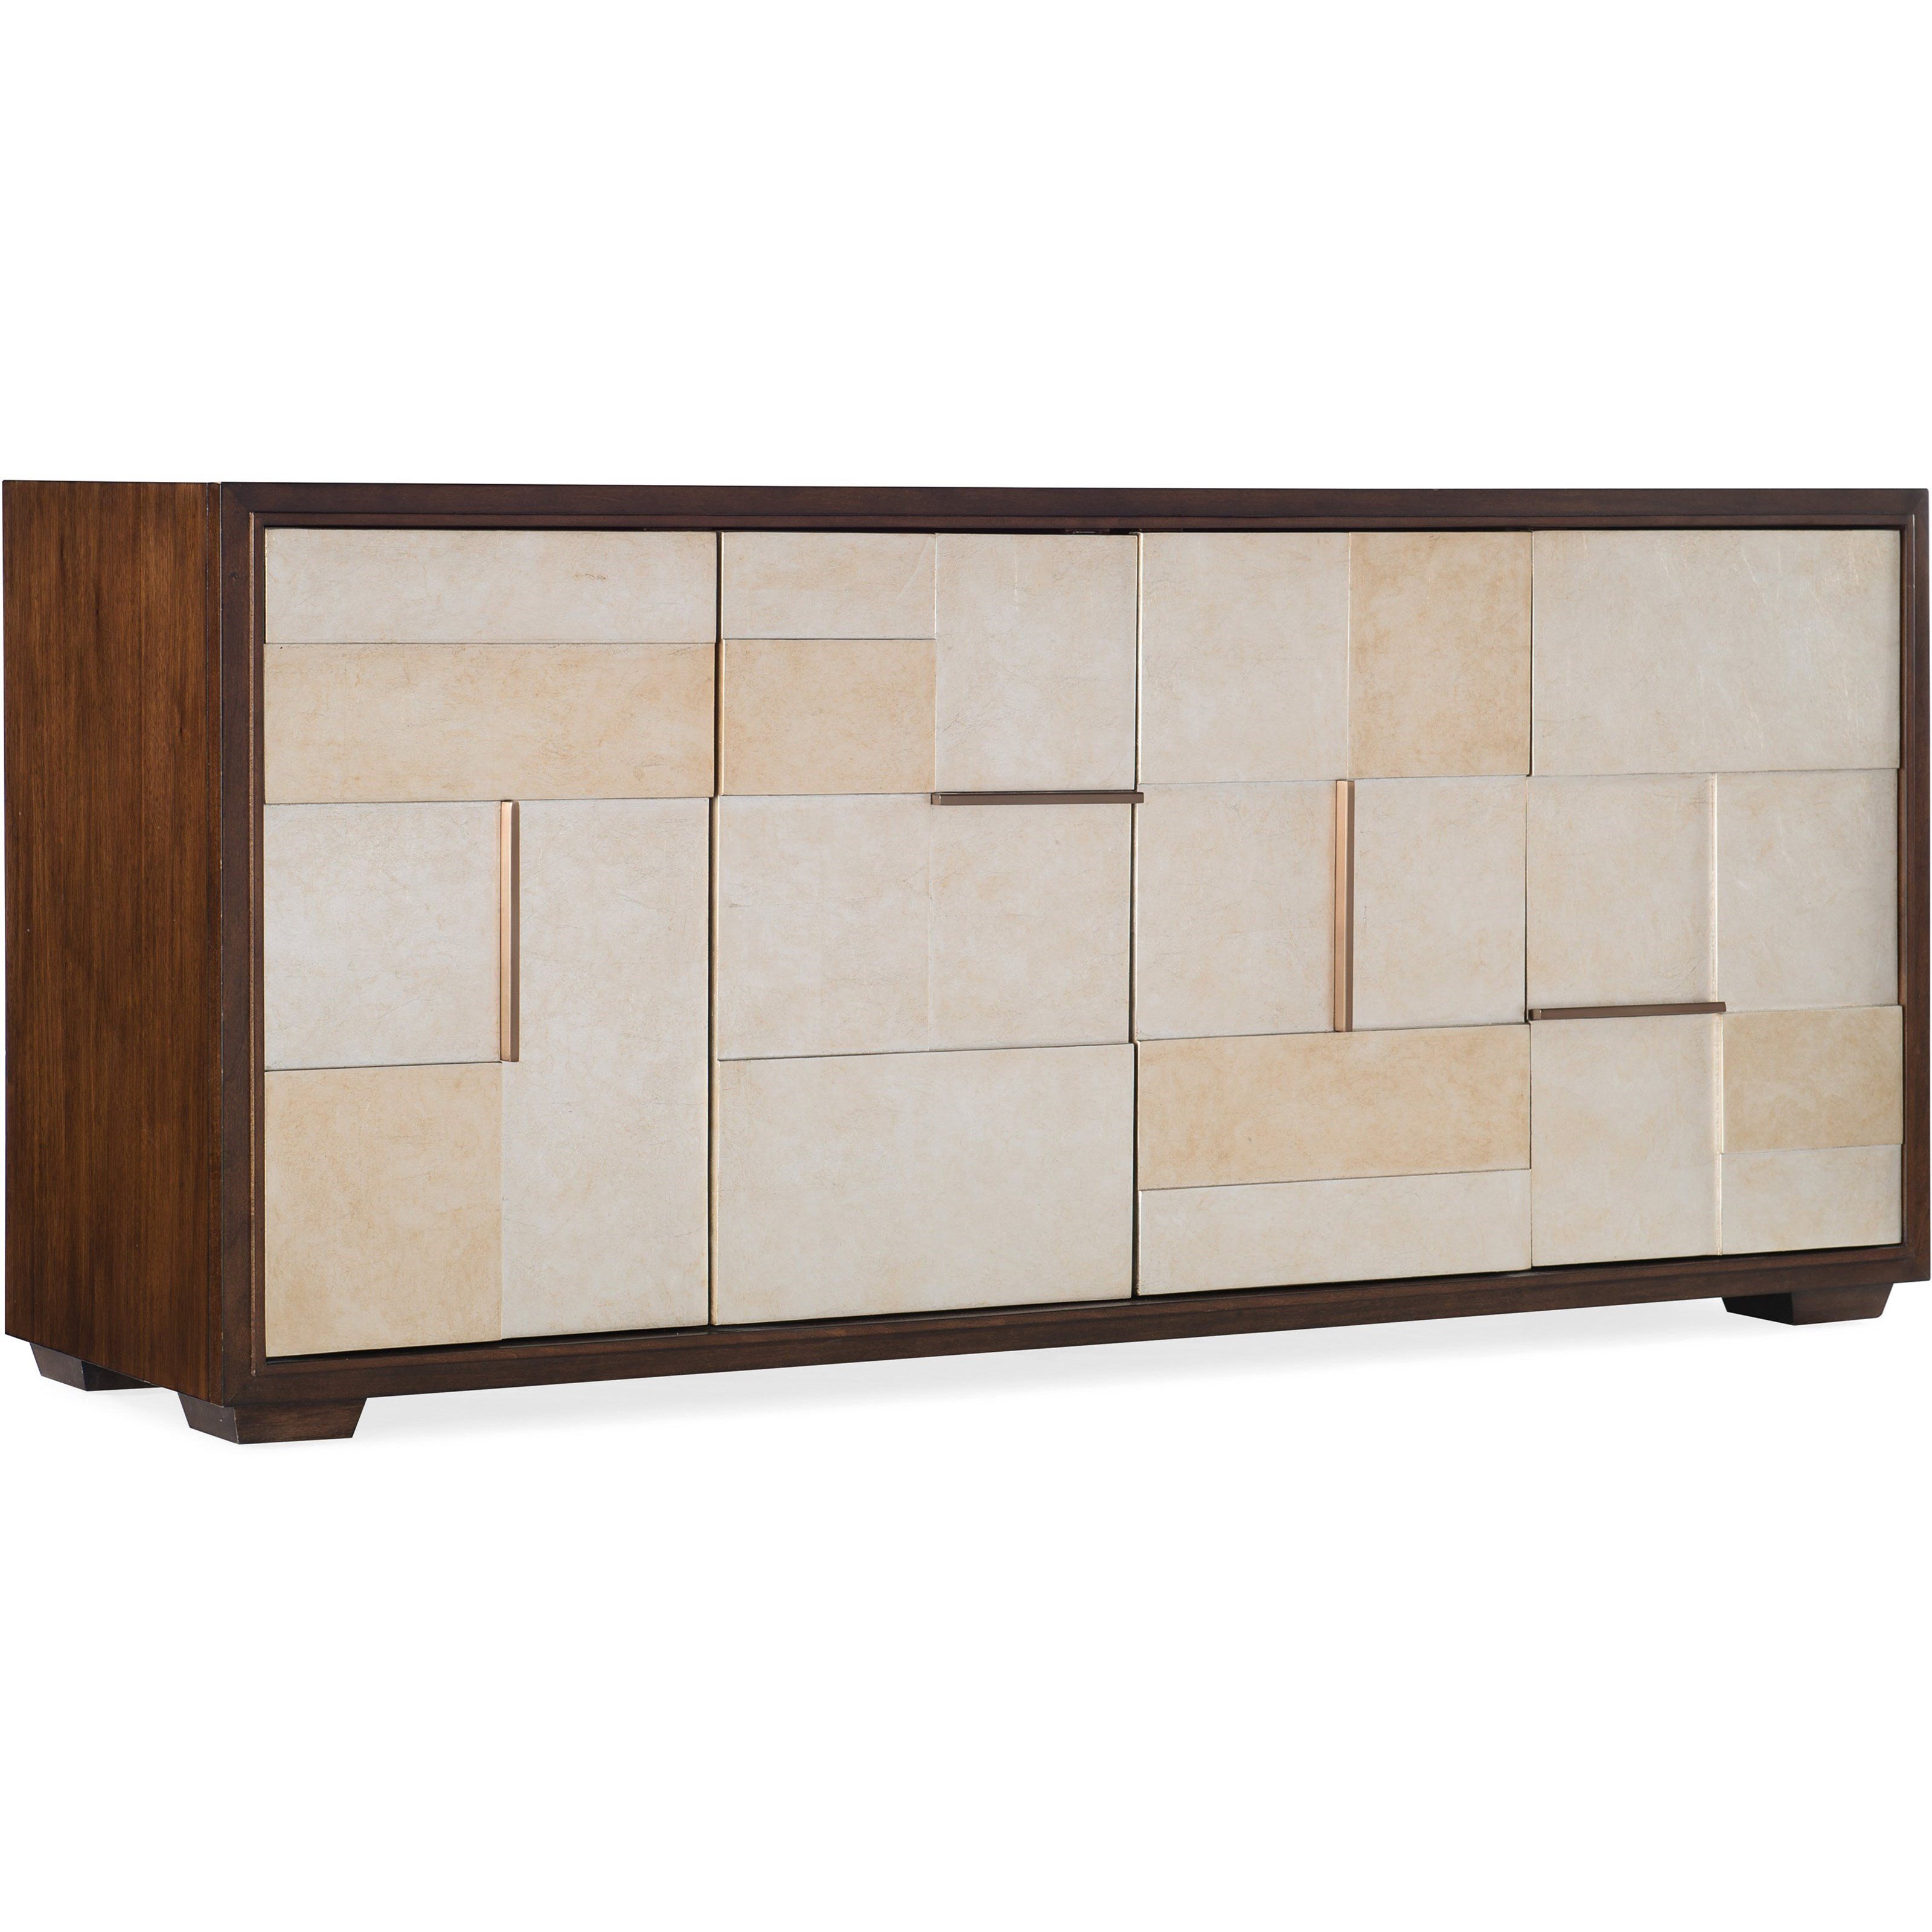 Living Room Accents Entertainment Console by Hooker Furniture at Fashion Furniture